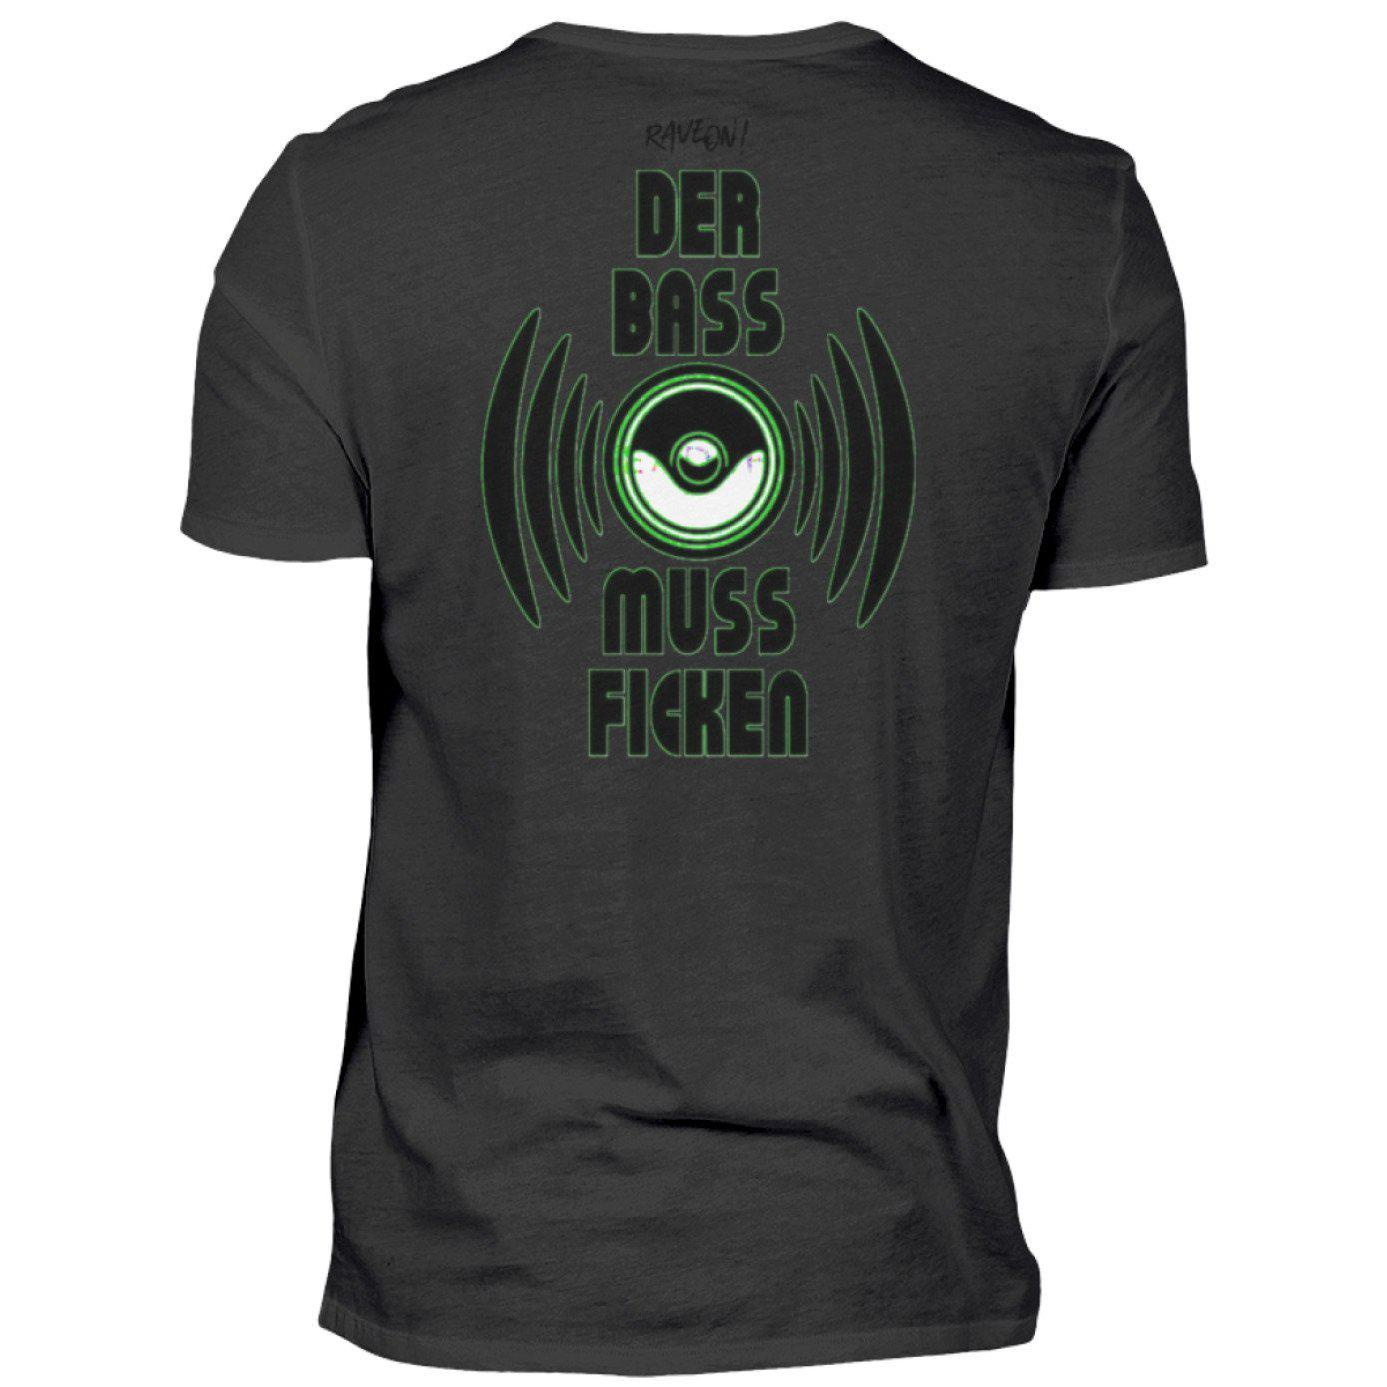 DER BASS MUSS F*n! Back Side - Rave On!® - Herren Shirt Herren Basic T-Shirt Black / S - Rave On!® der Club & Techno Szene Shop für Coole Junge Mode Streetwear Style & Fashion Outfits + Sexy Festival 420 Stuff